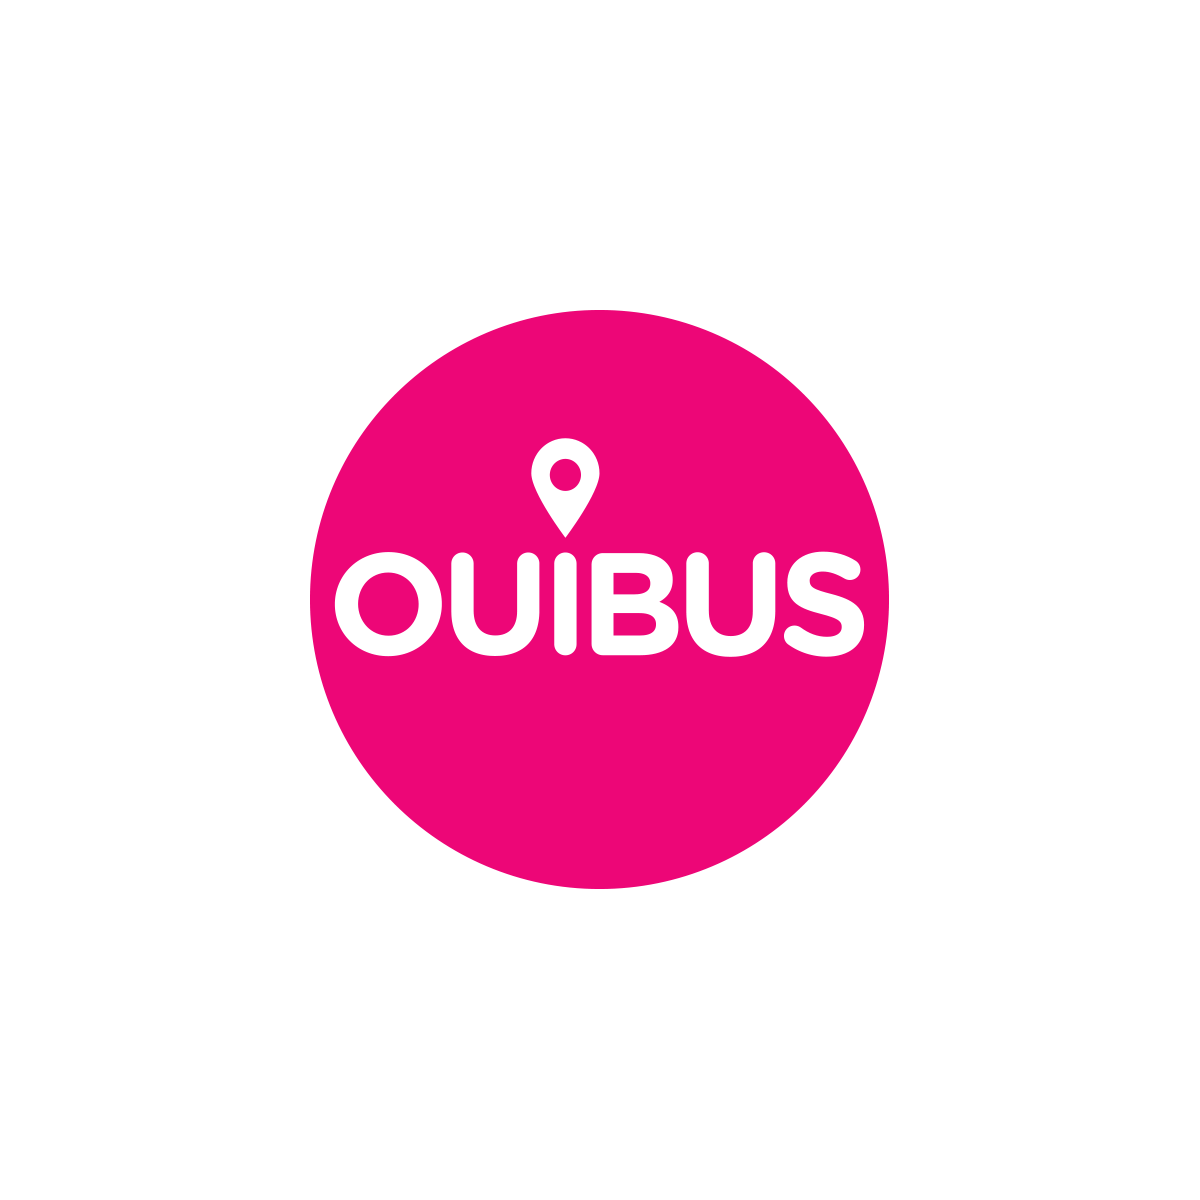 ouibusfr